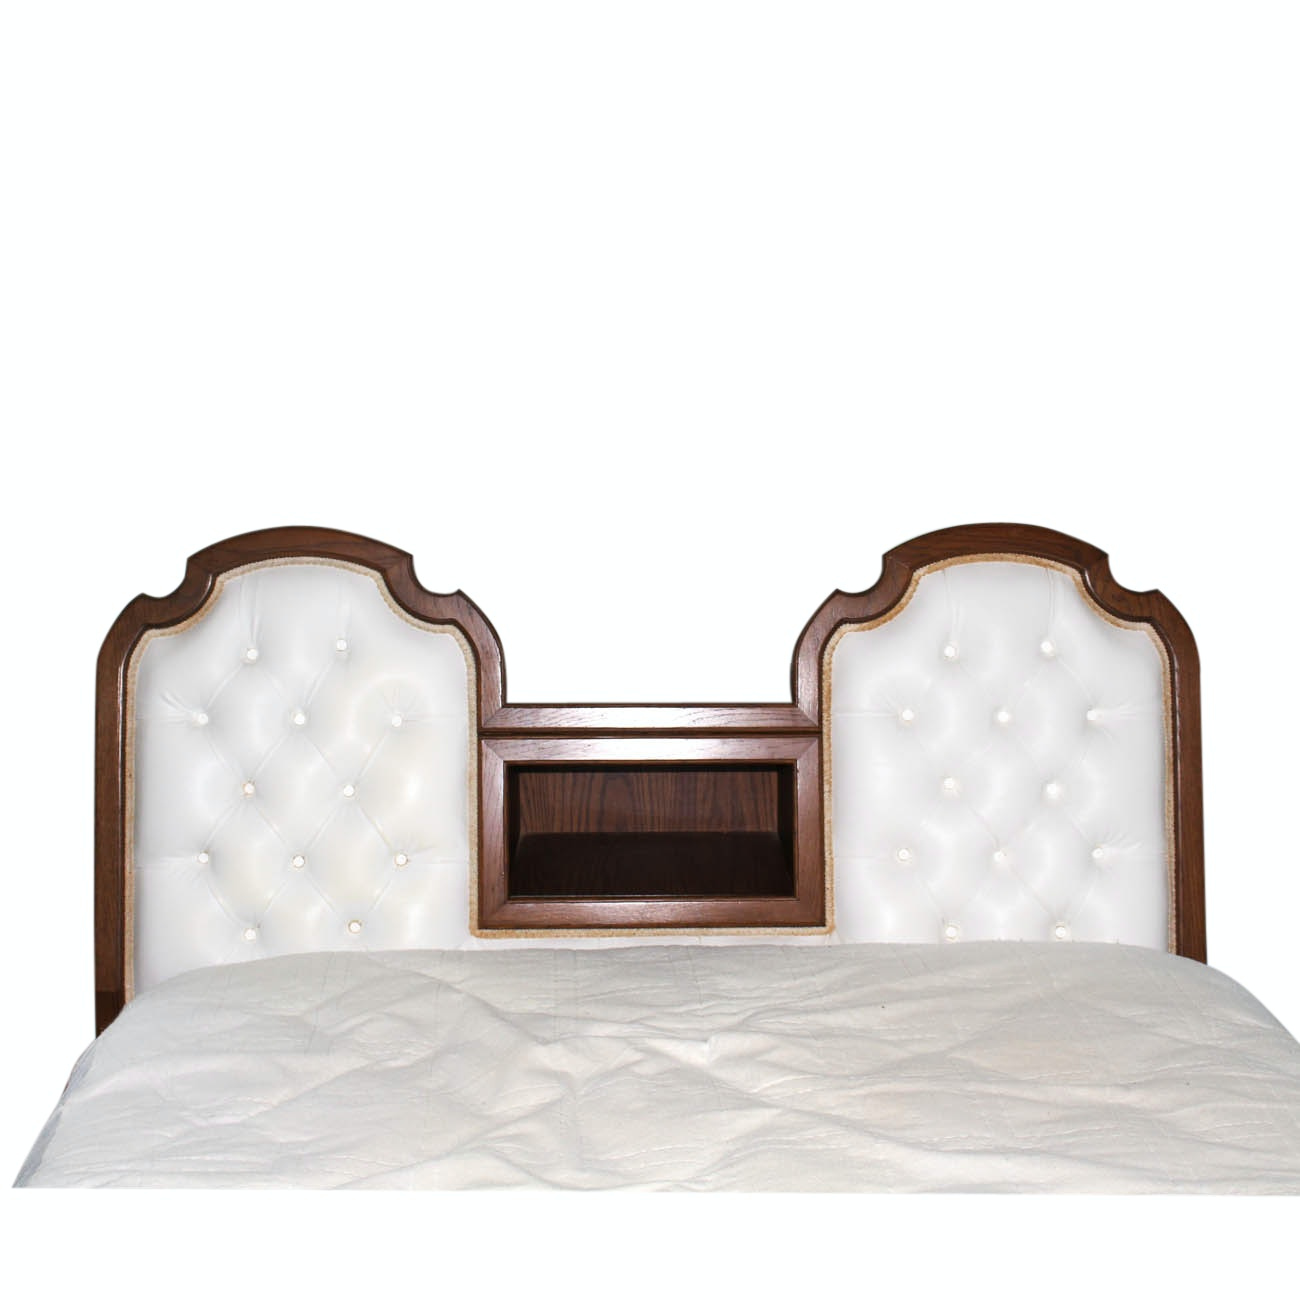 Vintage Upholstered Headboard